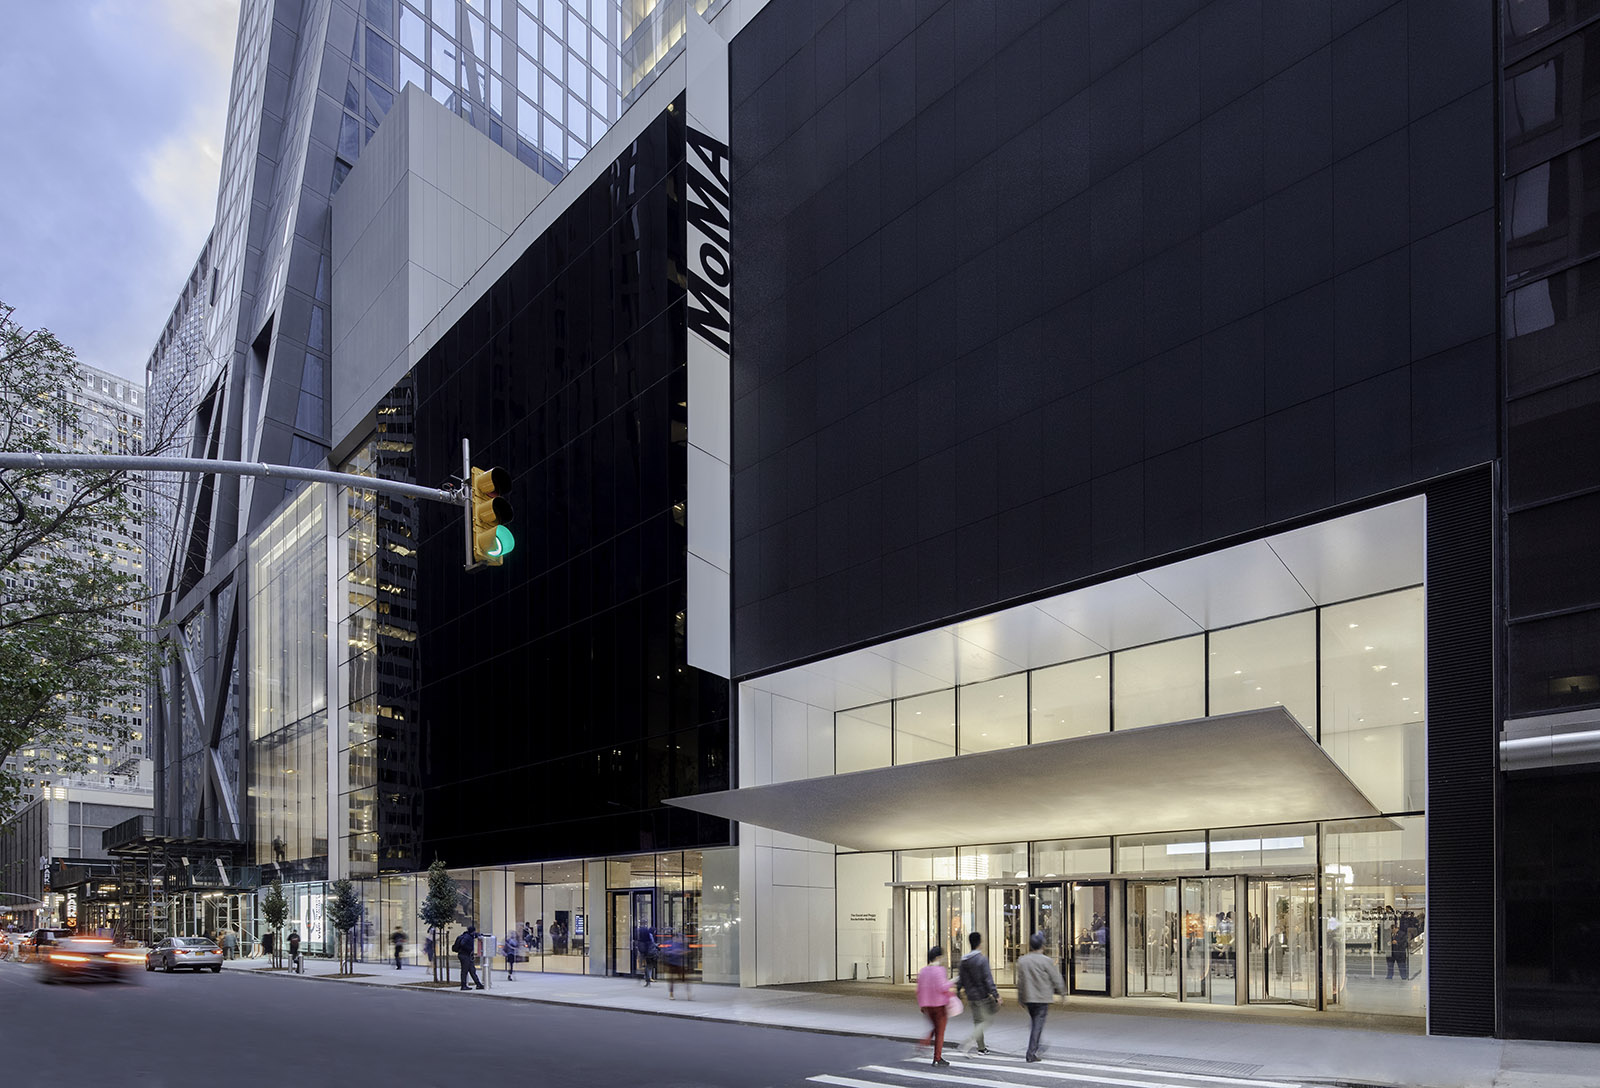 Museum of Modern Art renovation and expansion in New York City, USA by Diller Scofidio + Renfro in collaboration with Gensler